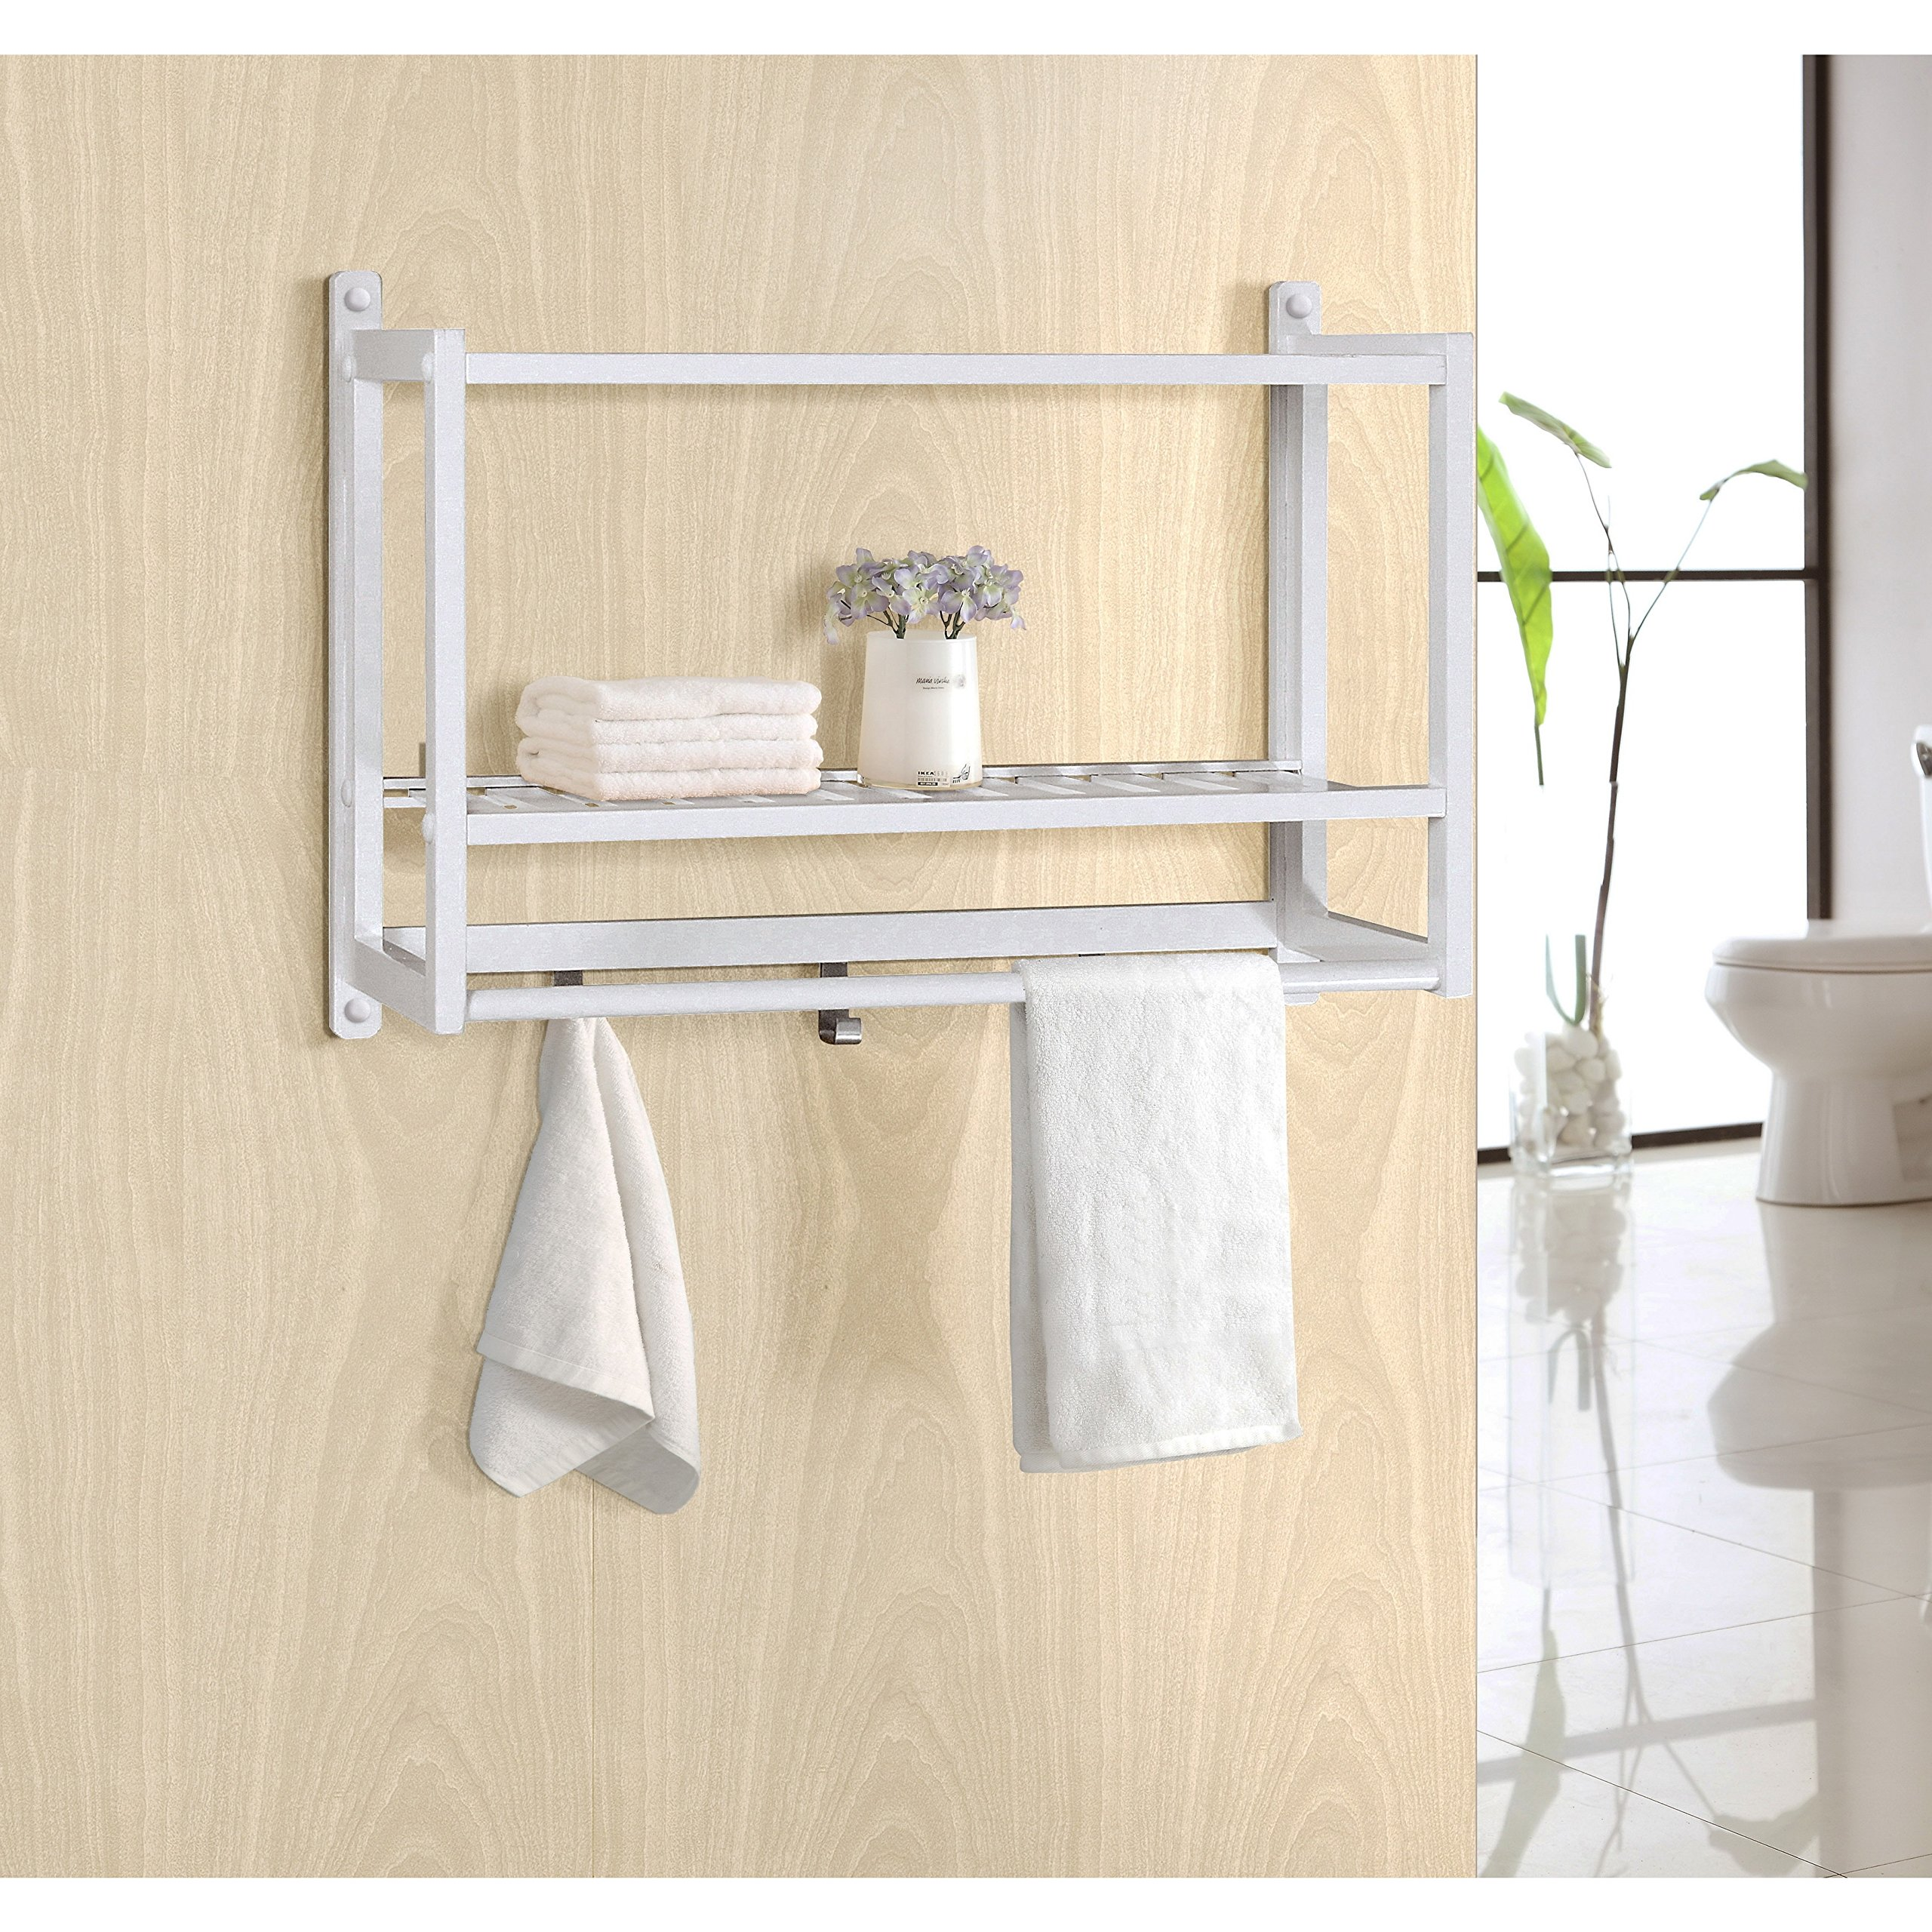 Gallerie Décor 20011-WH Natural Spa Bamboo Wall Organizer, One Size, White